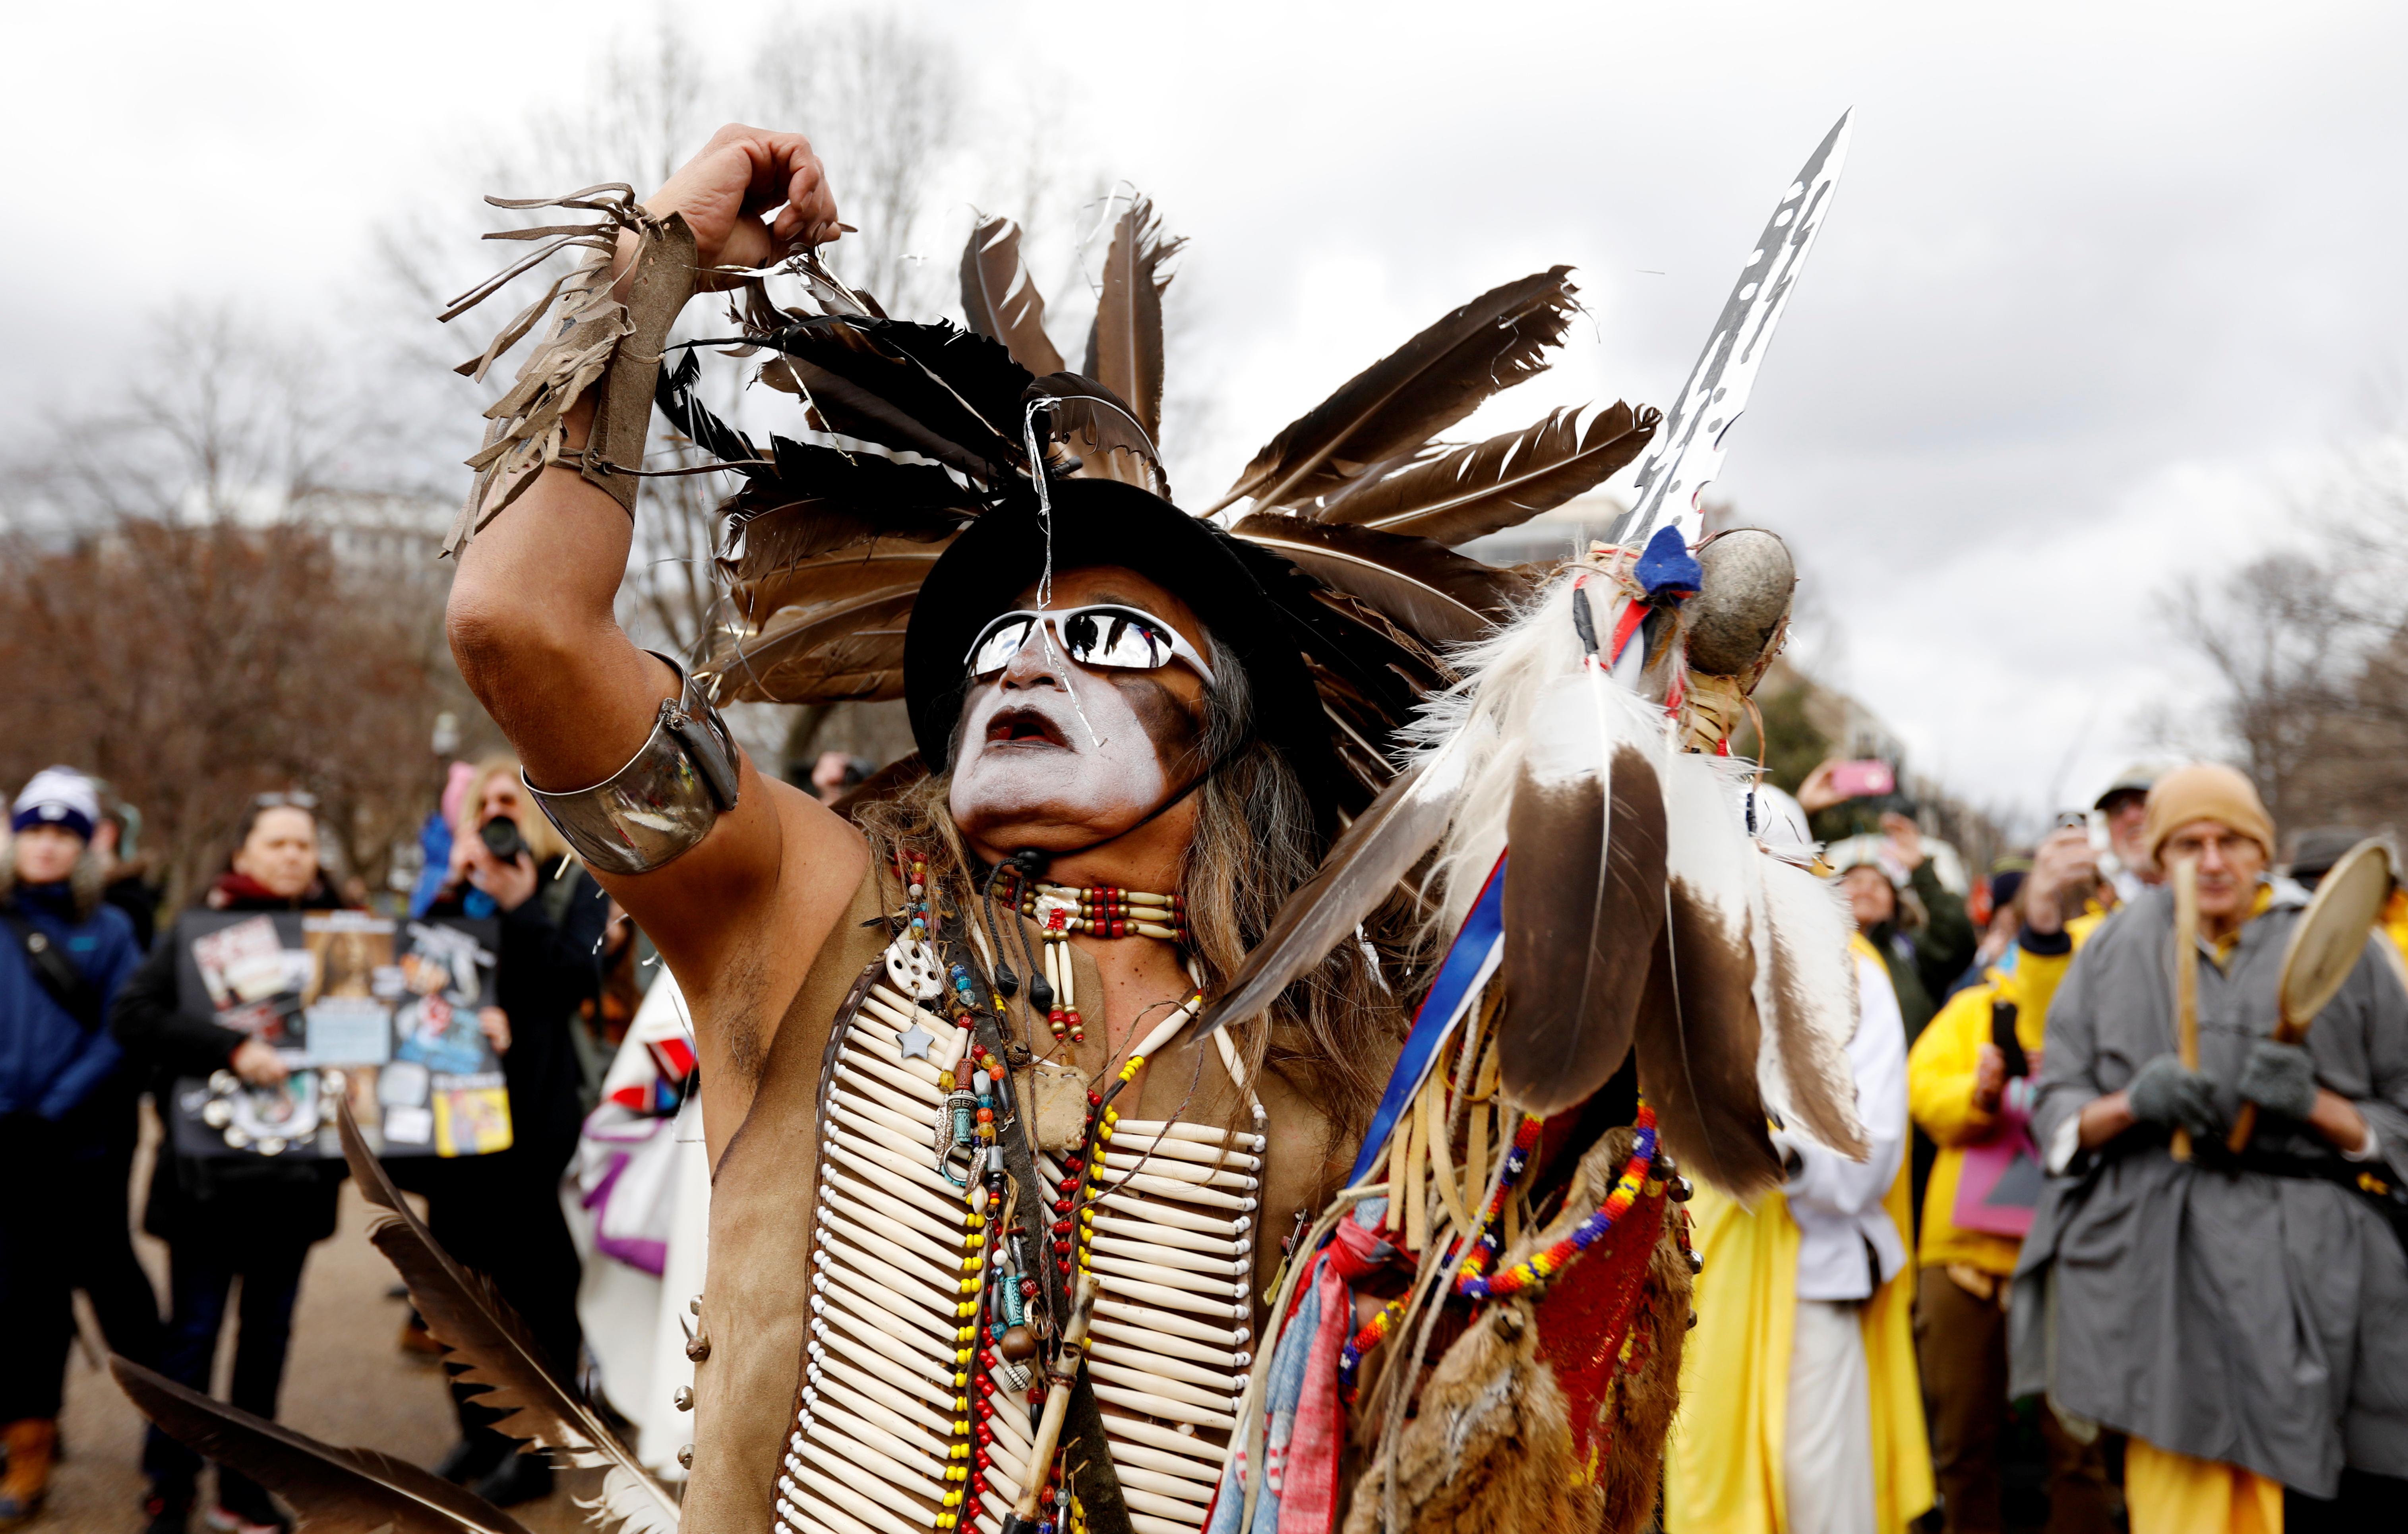 Little Thunder, a traditional dancer and indigenous activist from the Lakota tribe,  during a protest march in opposition to the Dakota Access and Keystone XL pipelines. REUTERS/Kevin Lamarque